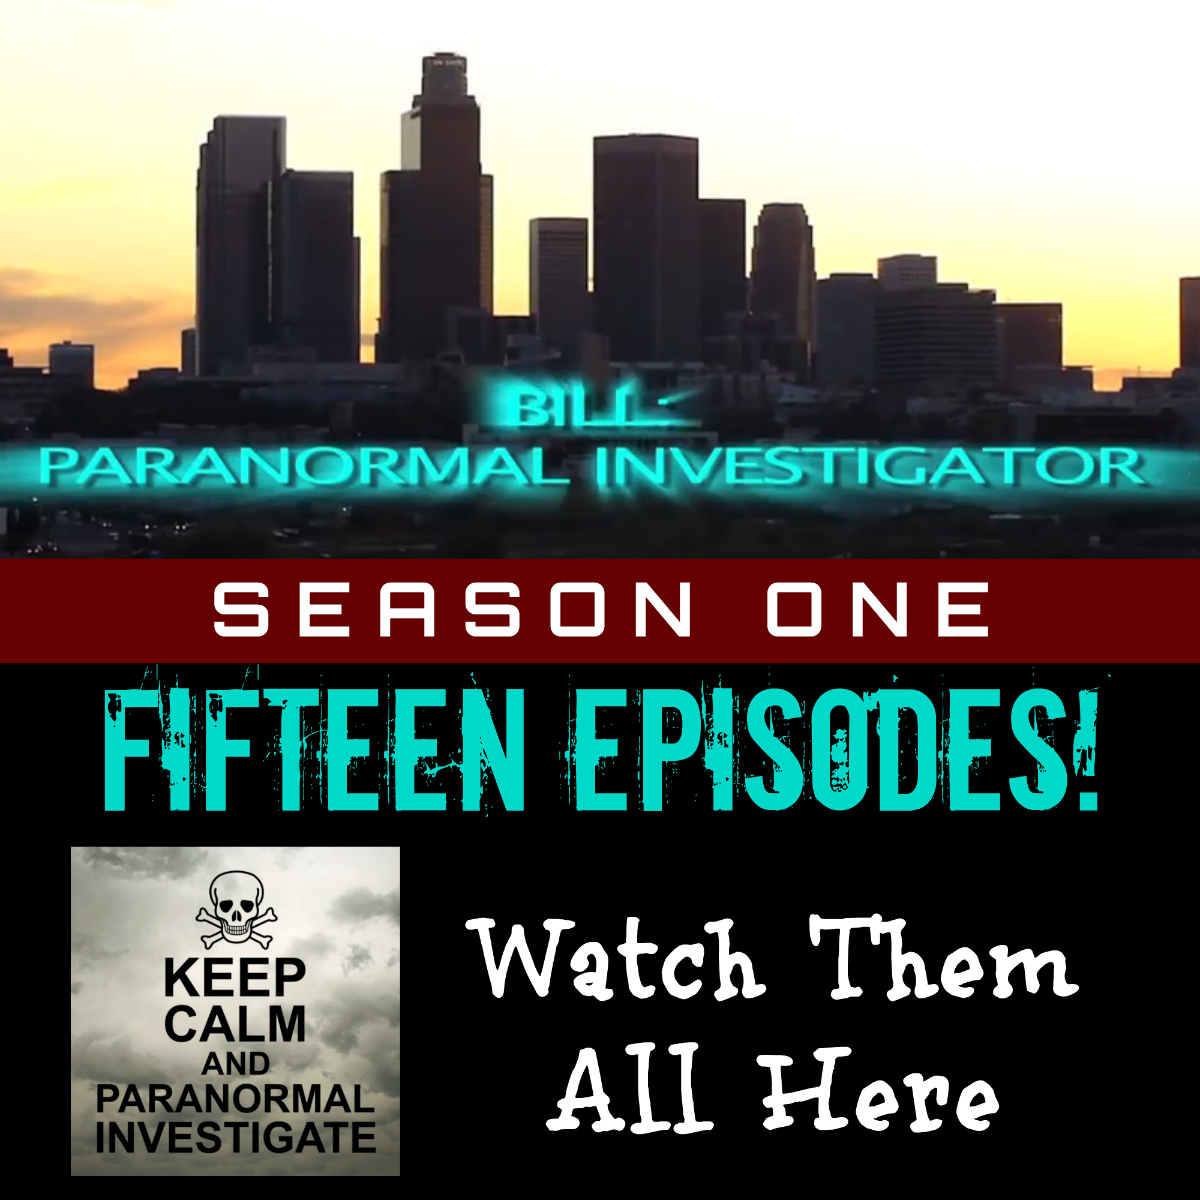 Paranormal Investigator Season One